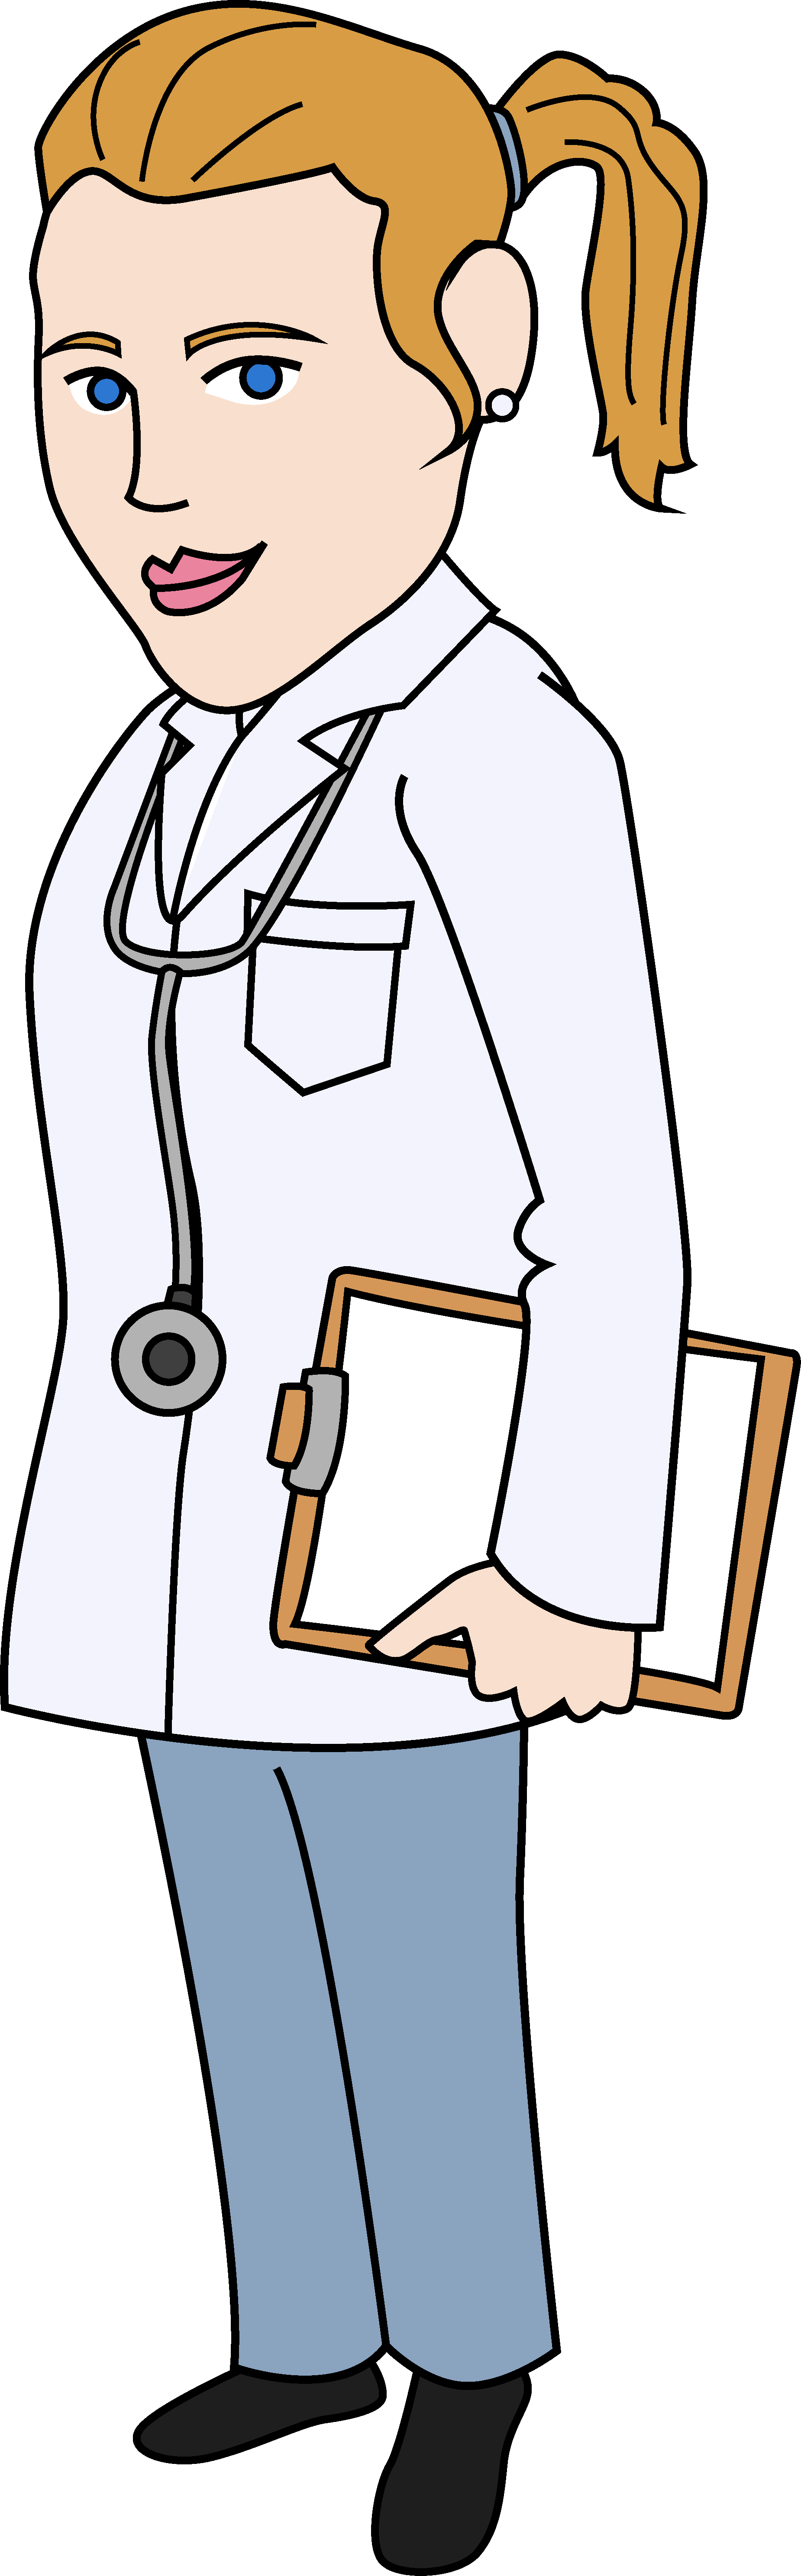 Doctor clipart woman doctor. Free download clip art